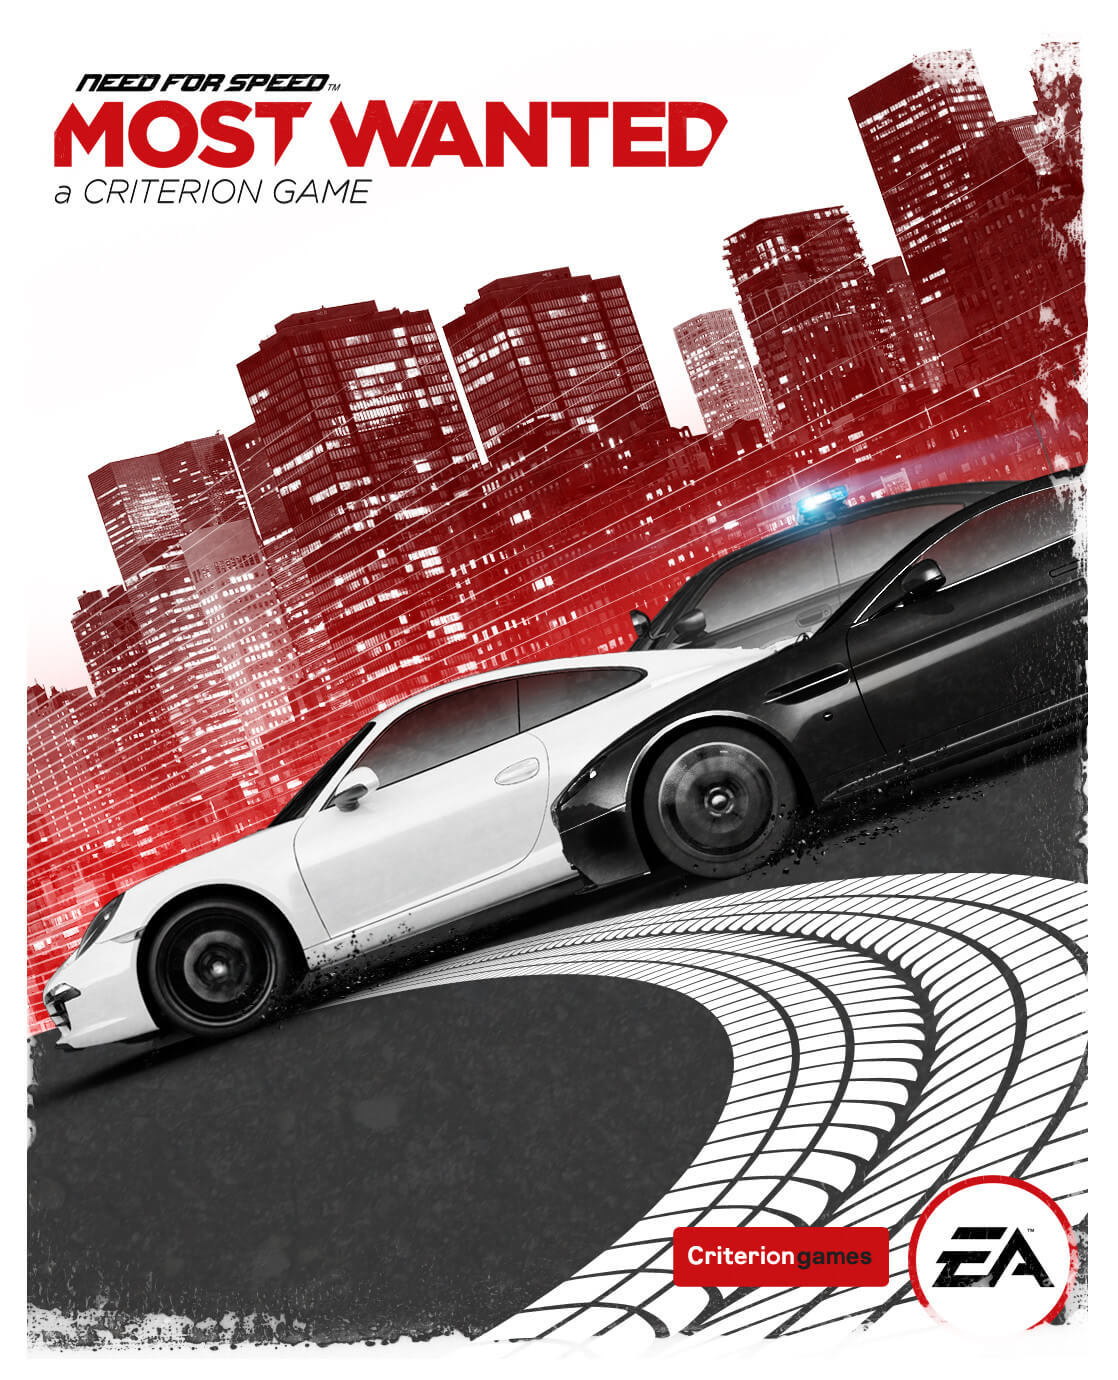 Download most wanted, download nfs most wanted fitgirl, download game most wanted, download game Most Wanted version Redux 2020, download game nfs most wanter, download free game most wanted version lmited, download fit girl Need for Speed Most Wanted, download limited version  edition nfs most wanted game, download Redux 2020 version of Most Wanted game, download limited edition Most Wanted